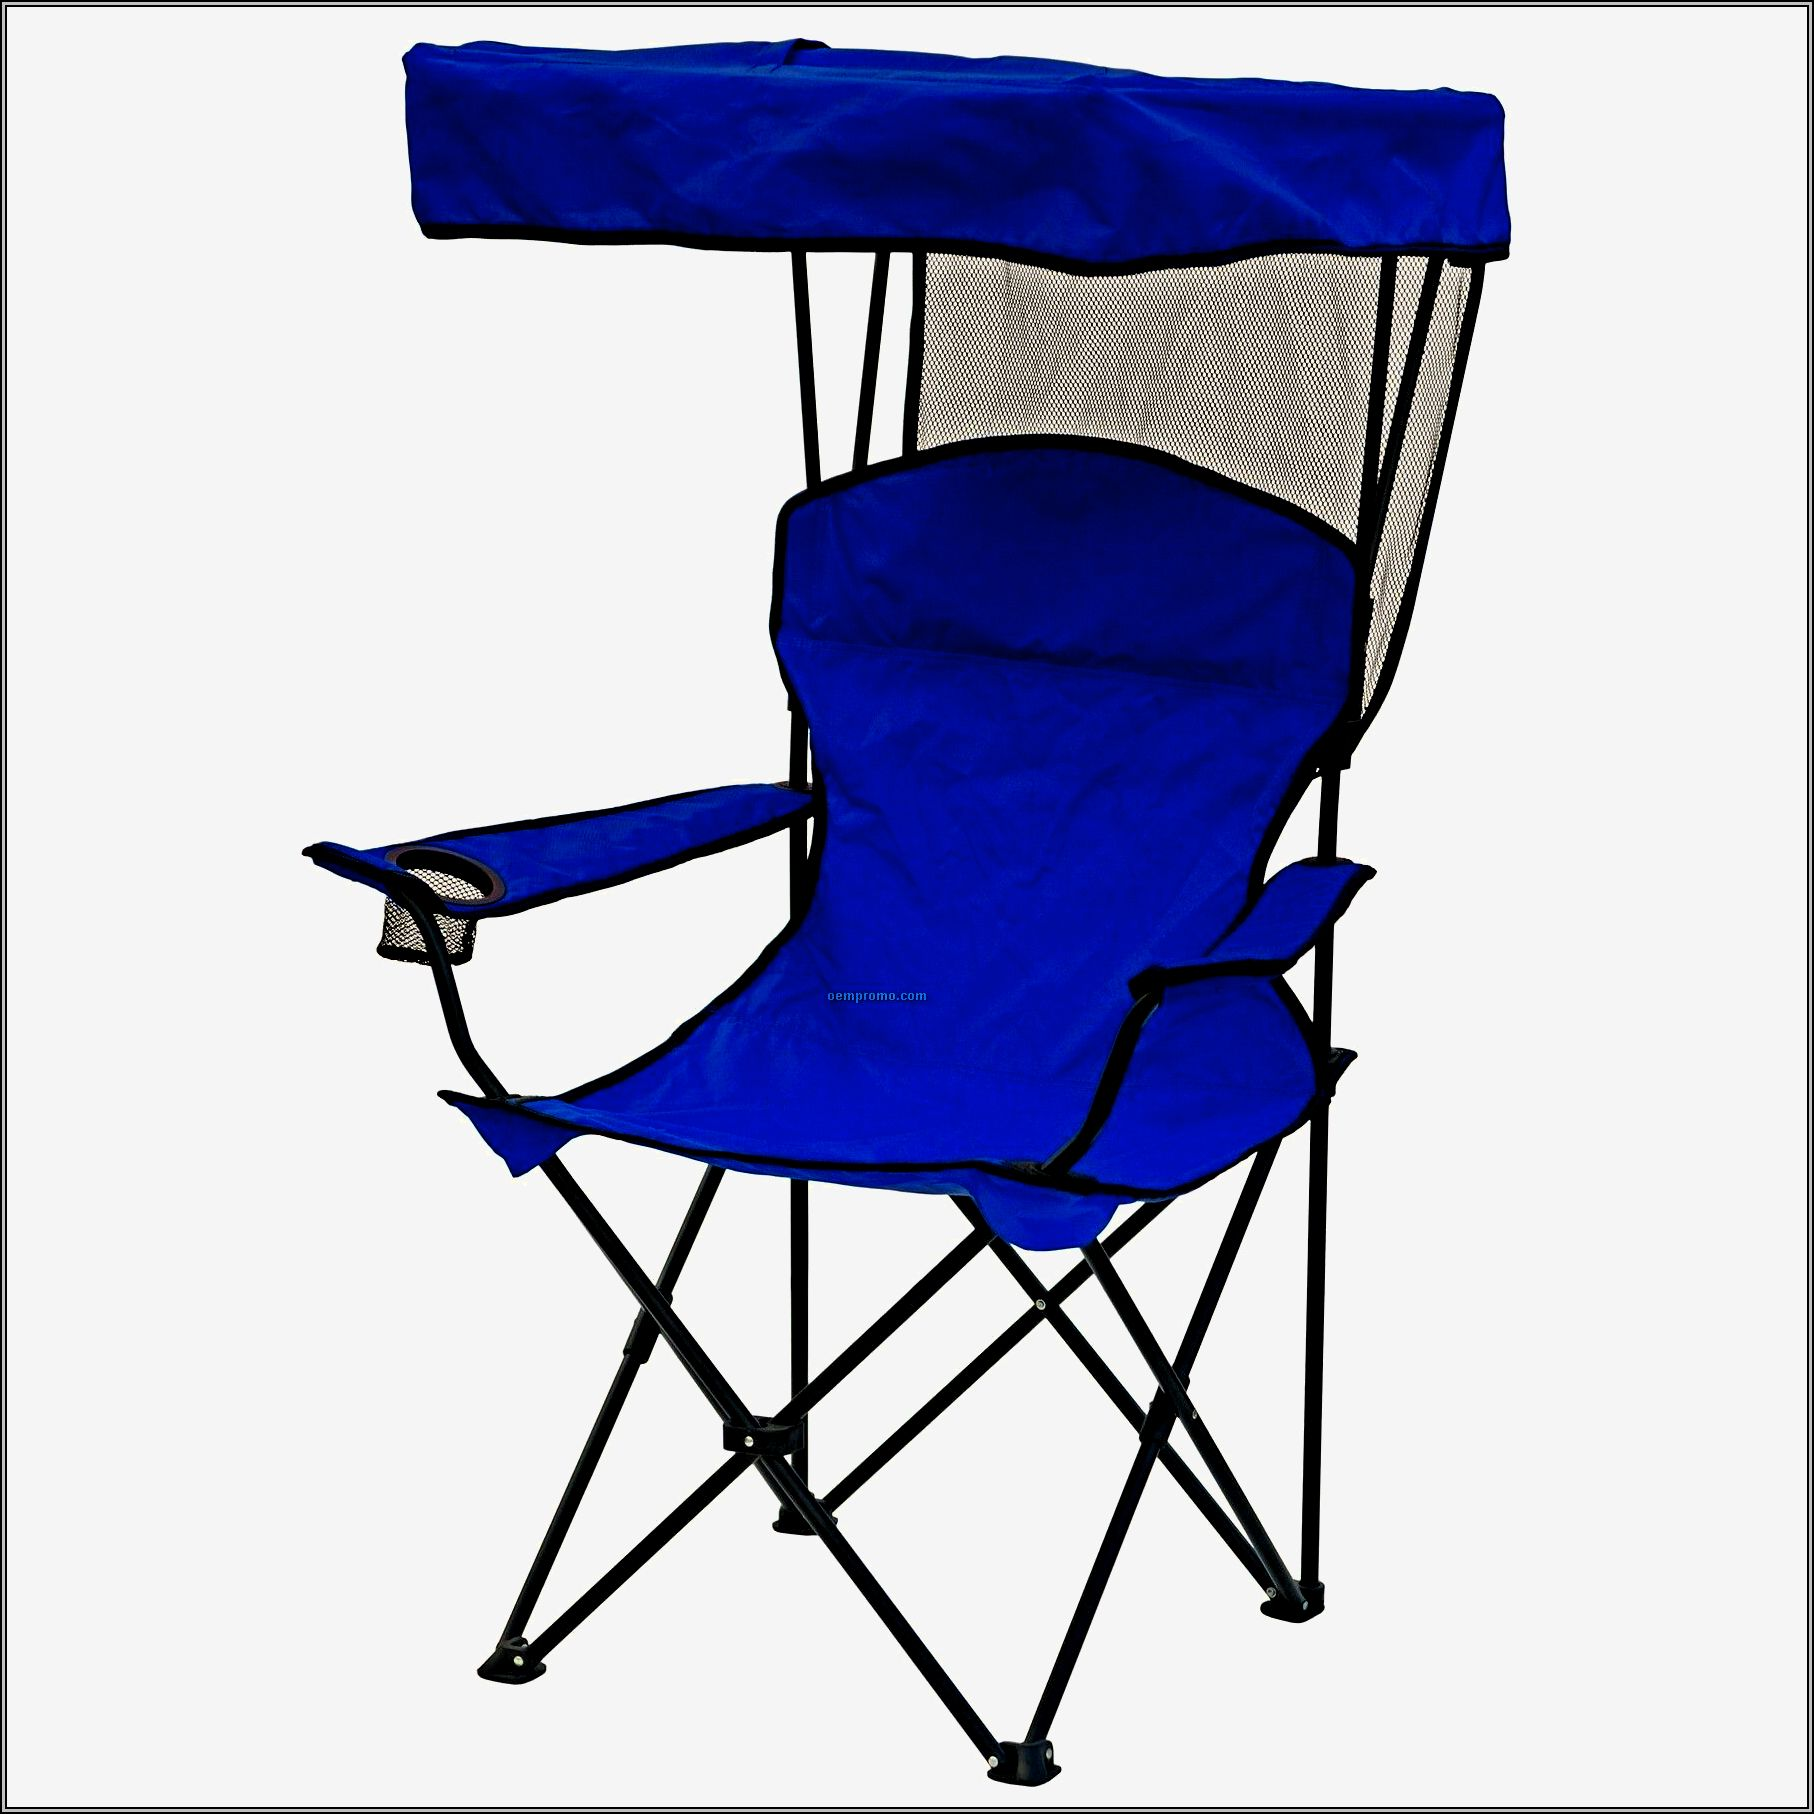 Folding Chairs With Umbrella Outdoor Folding Chairs With Umbrella Chairs Home